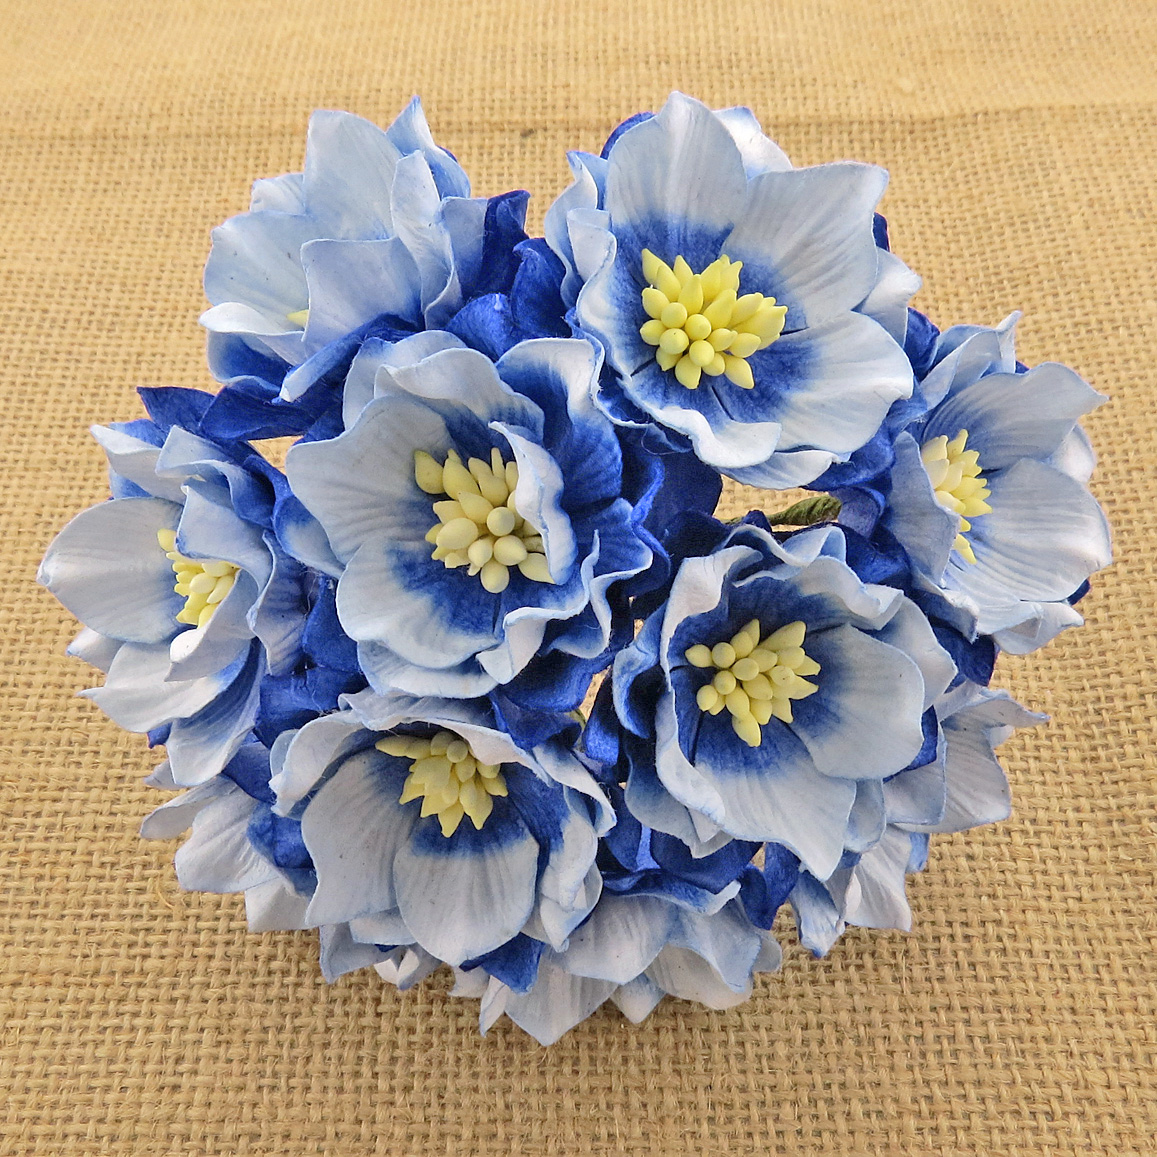 25 2-TONE SAPPHIRE BLUE MULBERRY PAPER LOTUS FLOWERS